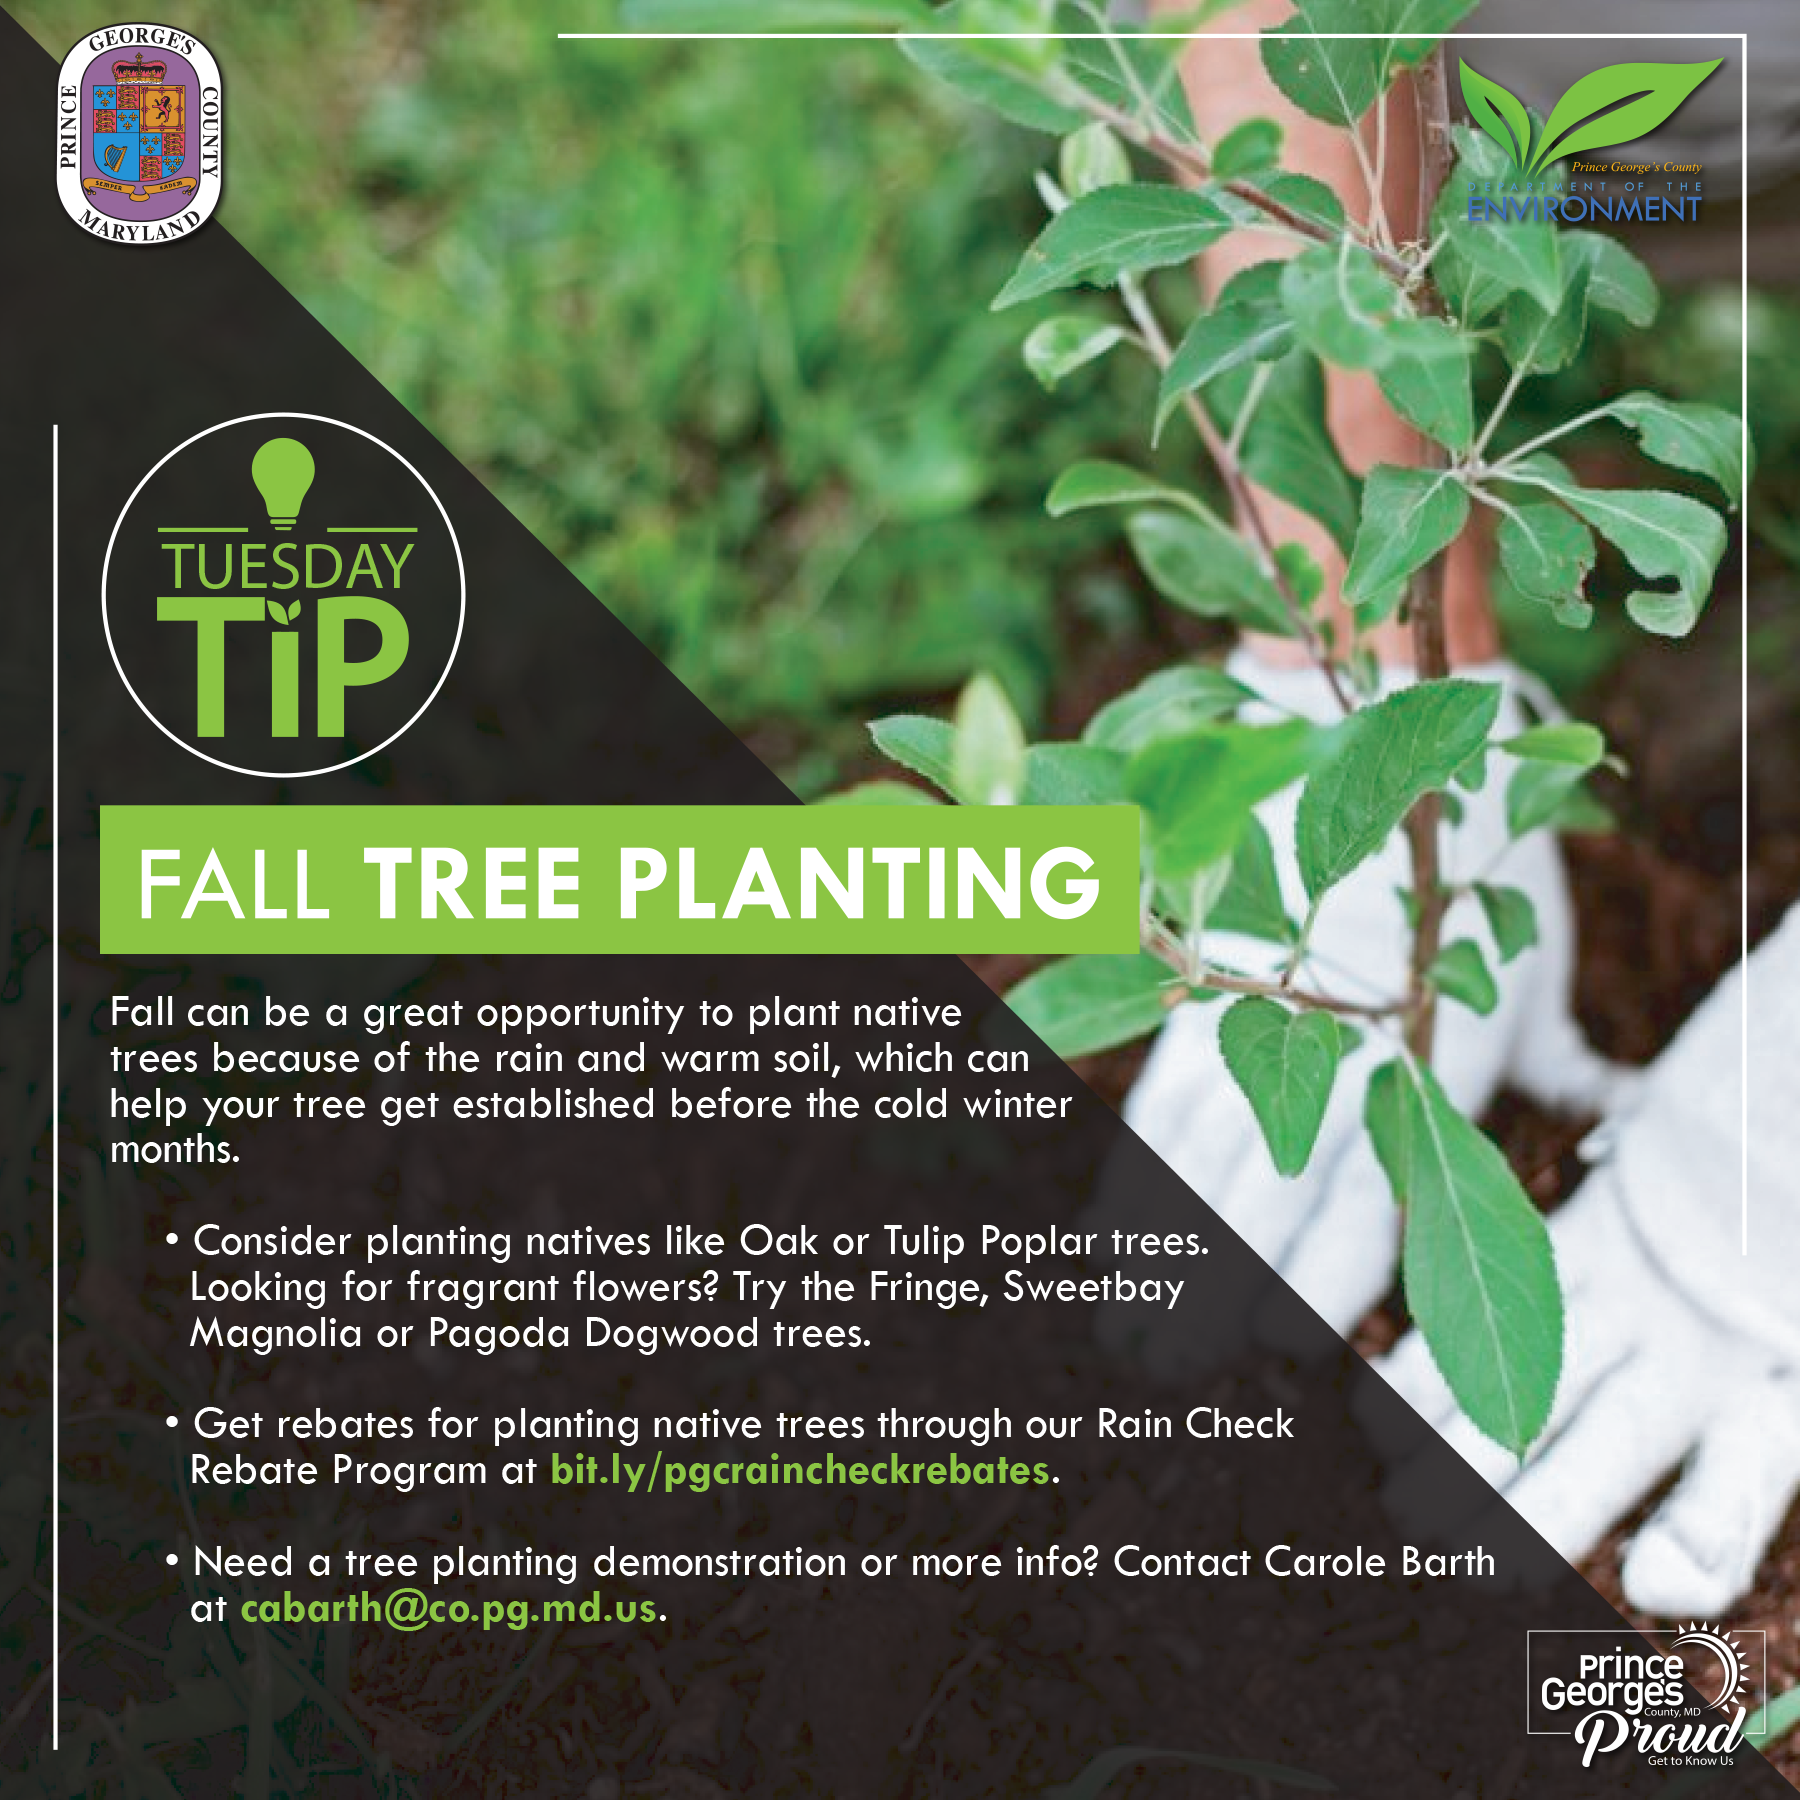 Tues tip 10.20.20 Fall tree planting eng